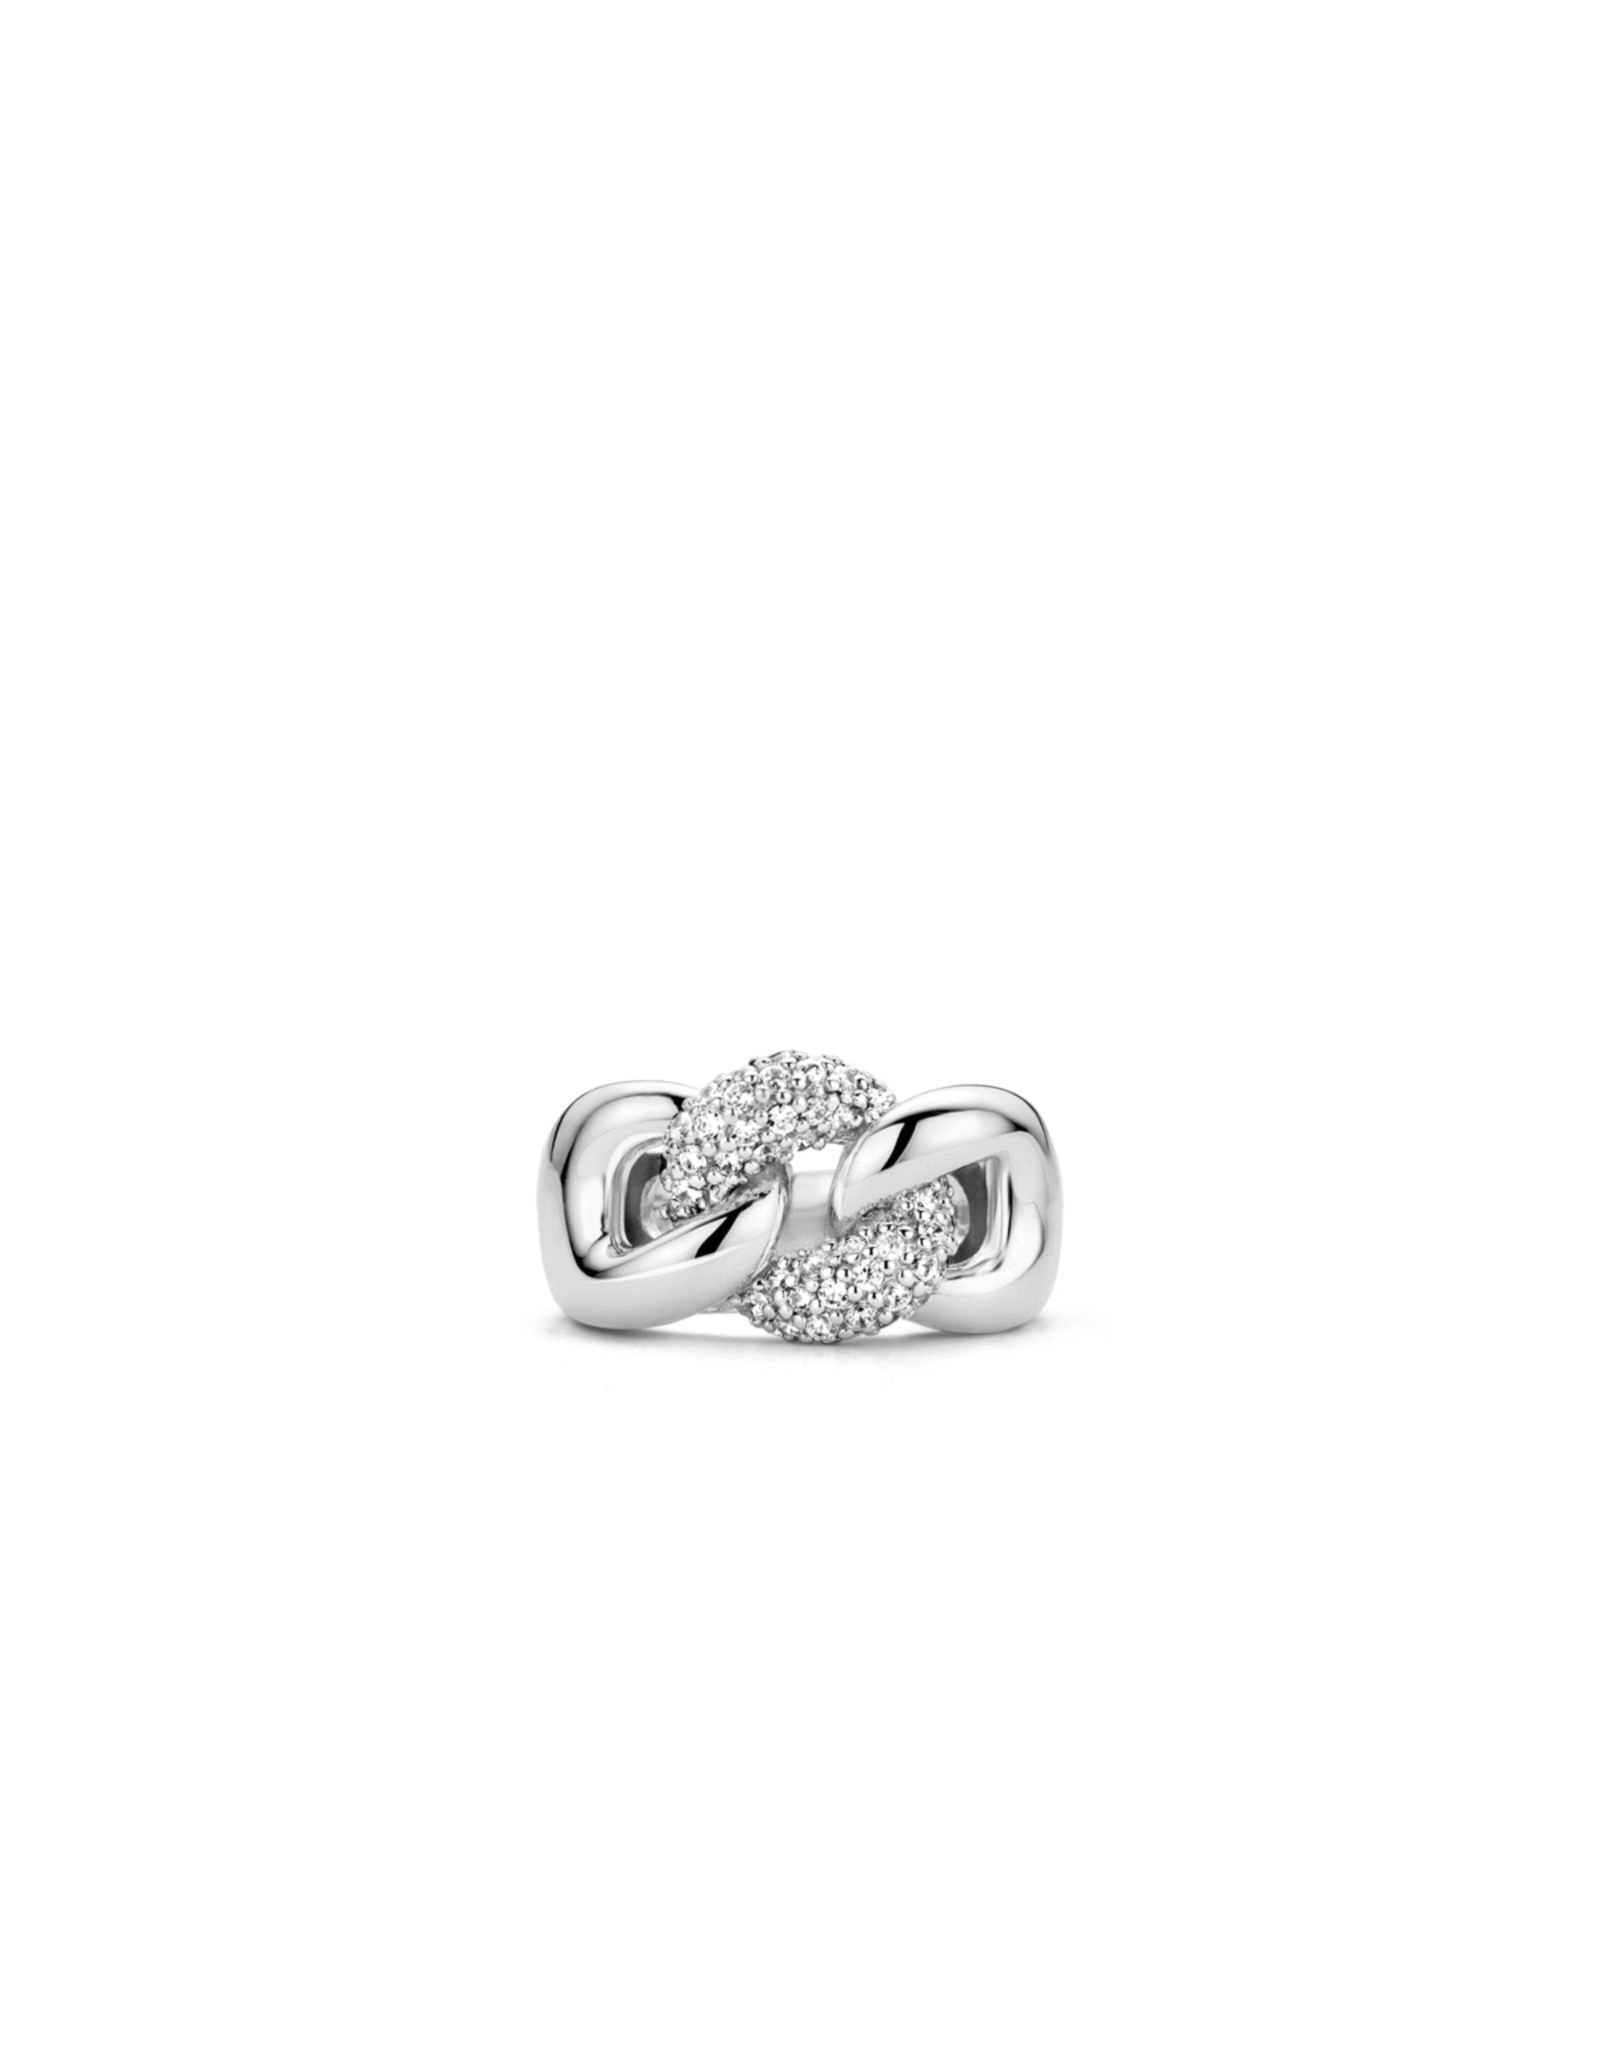 Silver Miami Cuban Link Ring with Pave Zirconias- 1587ZI